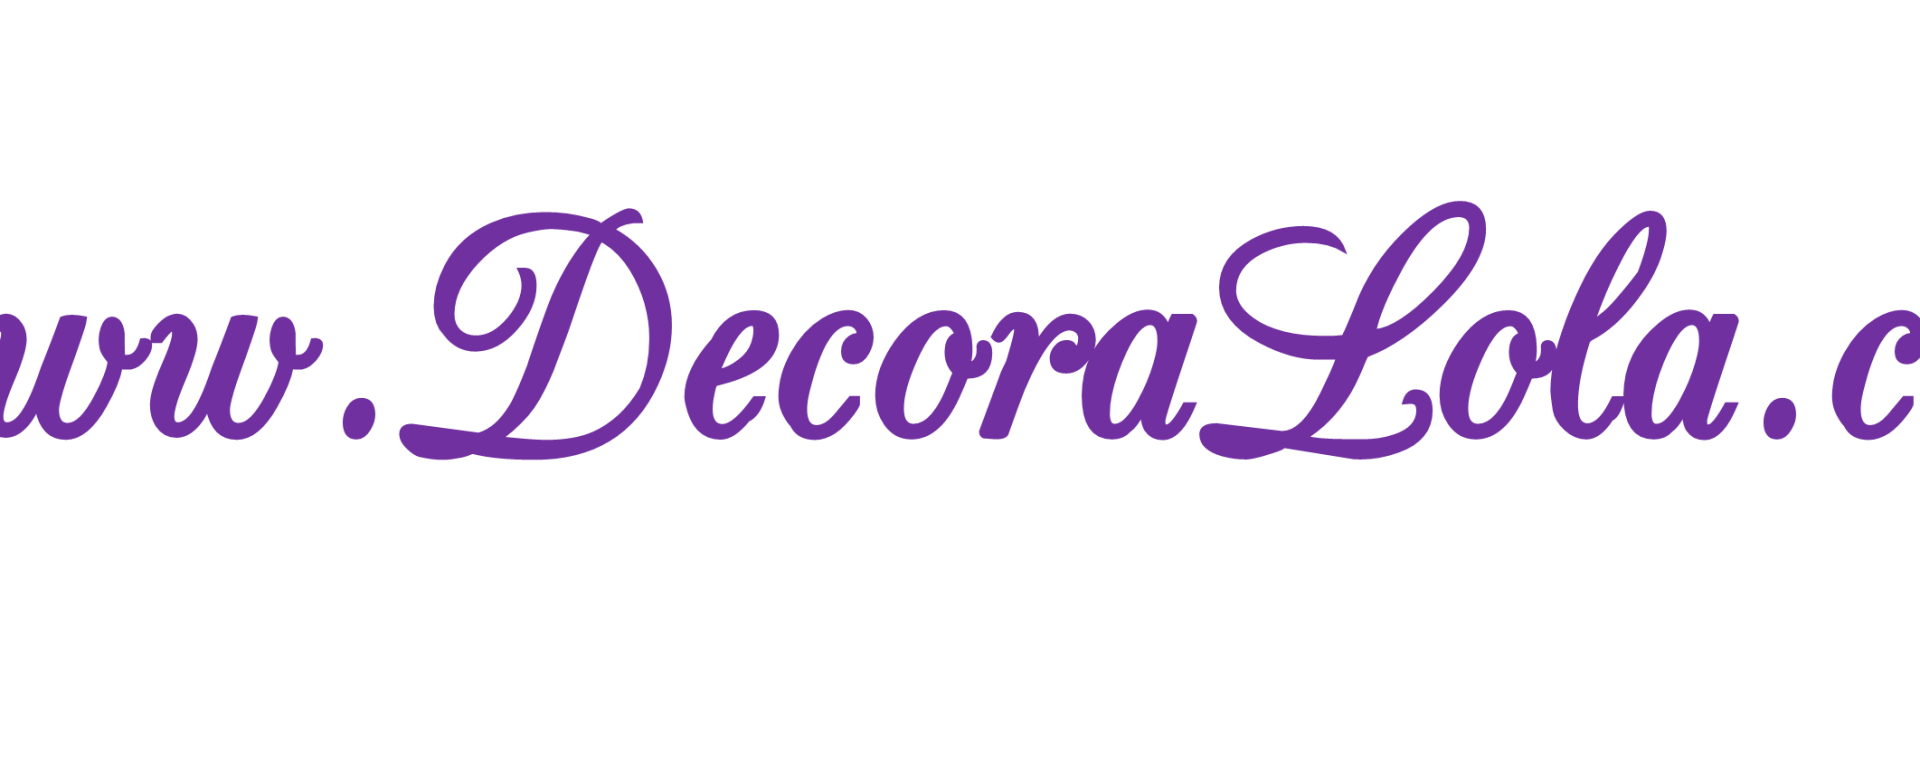 www.decoralola.com